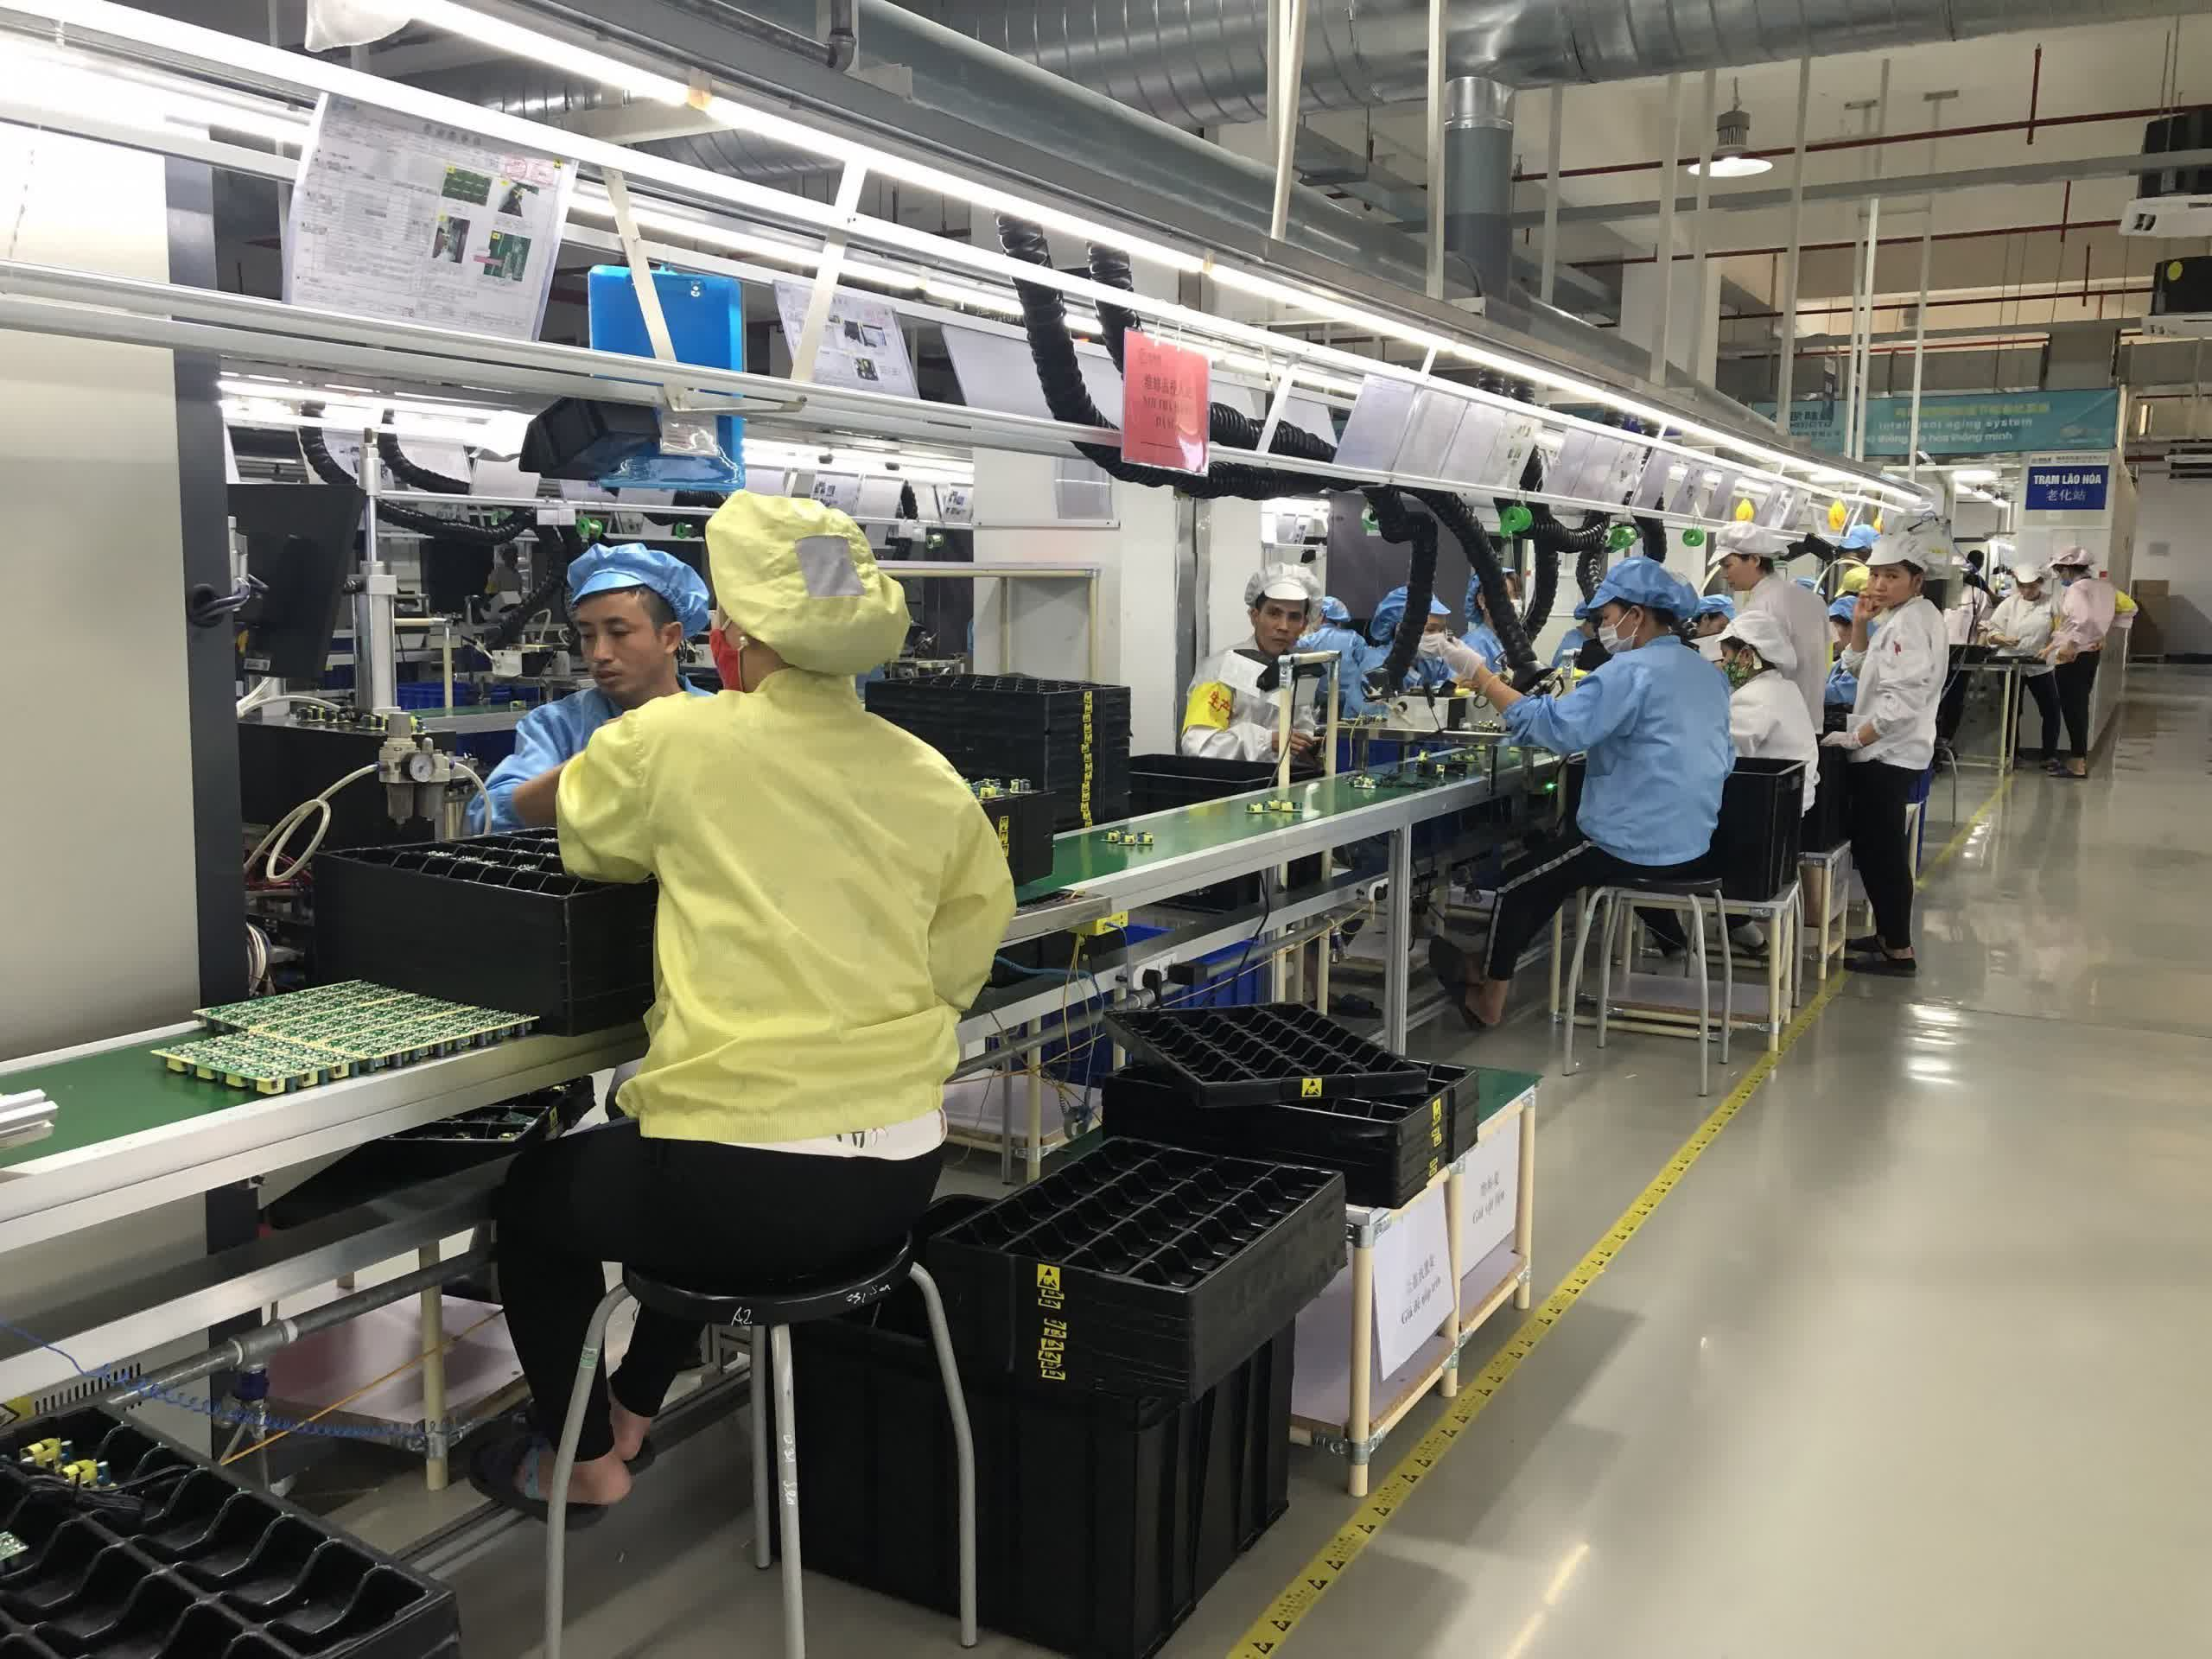 Companies shifting production away from China are facing major challenges in Vietnam